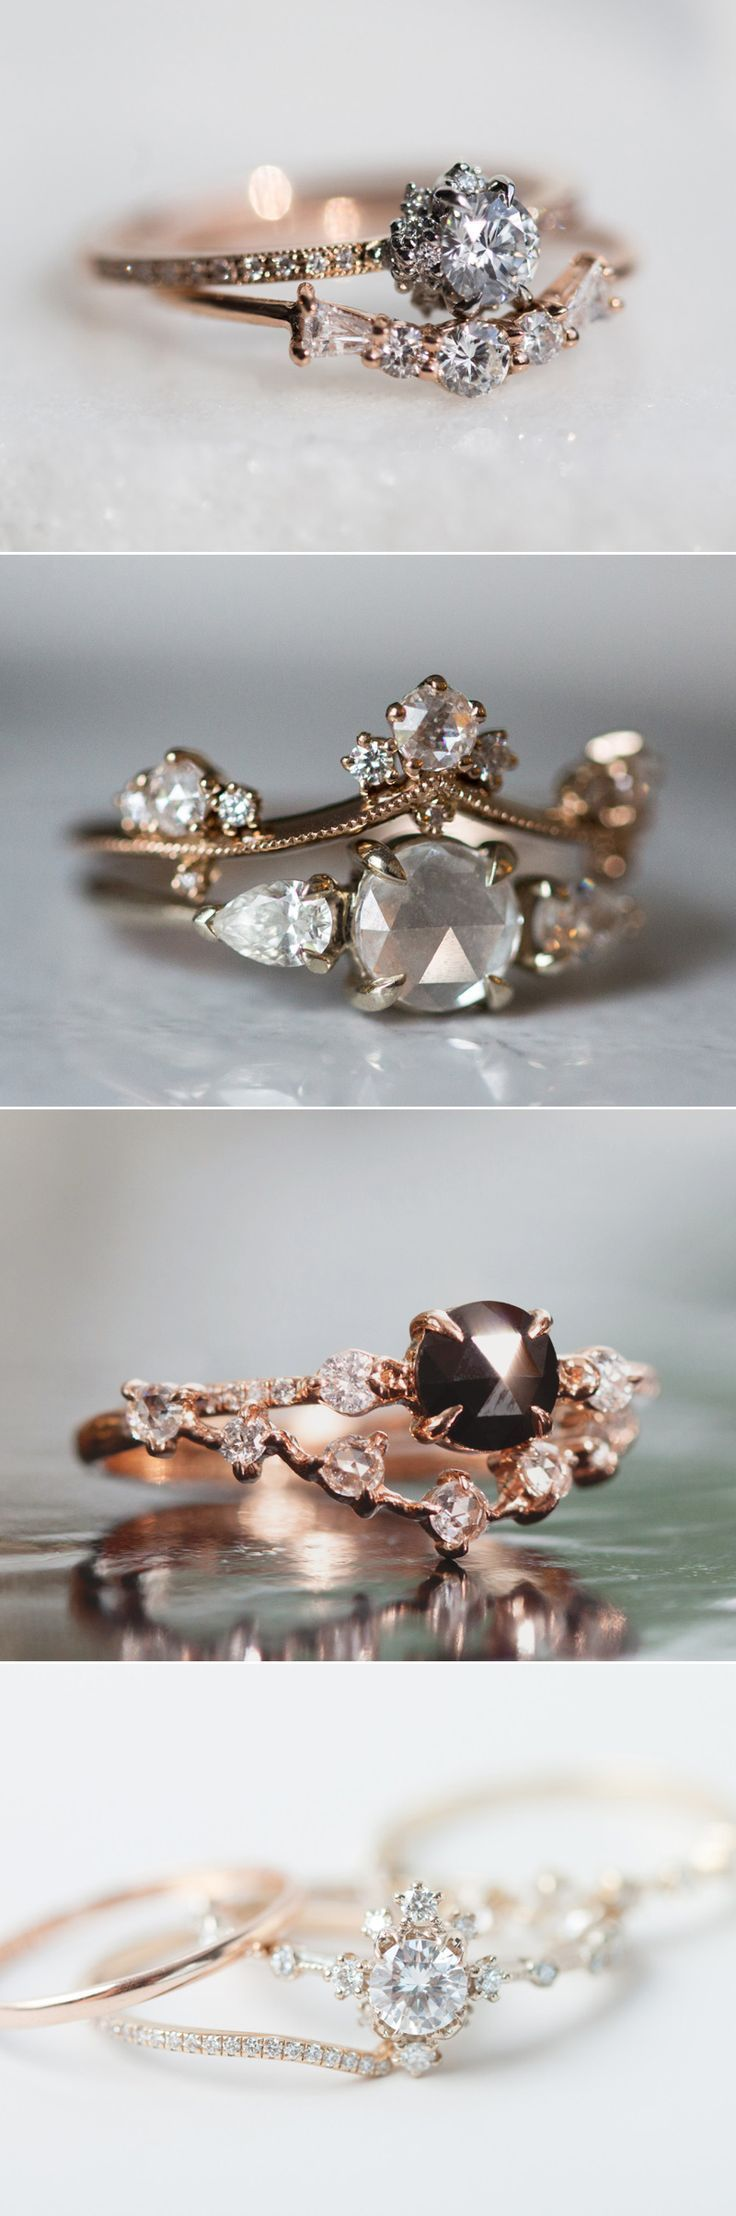 28 Bespoke Natural Engagement Rings You Must See!        #engagement #engagement…